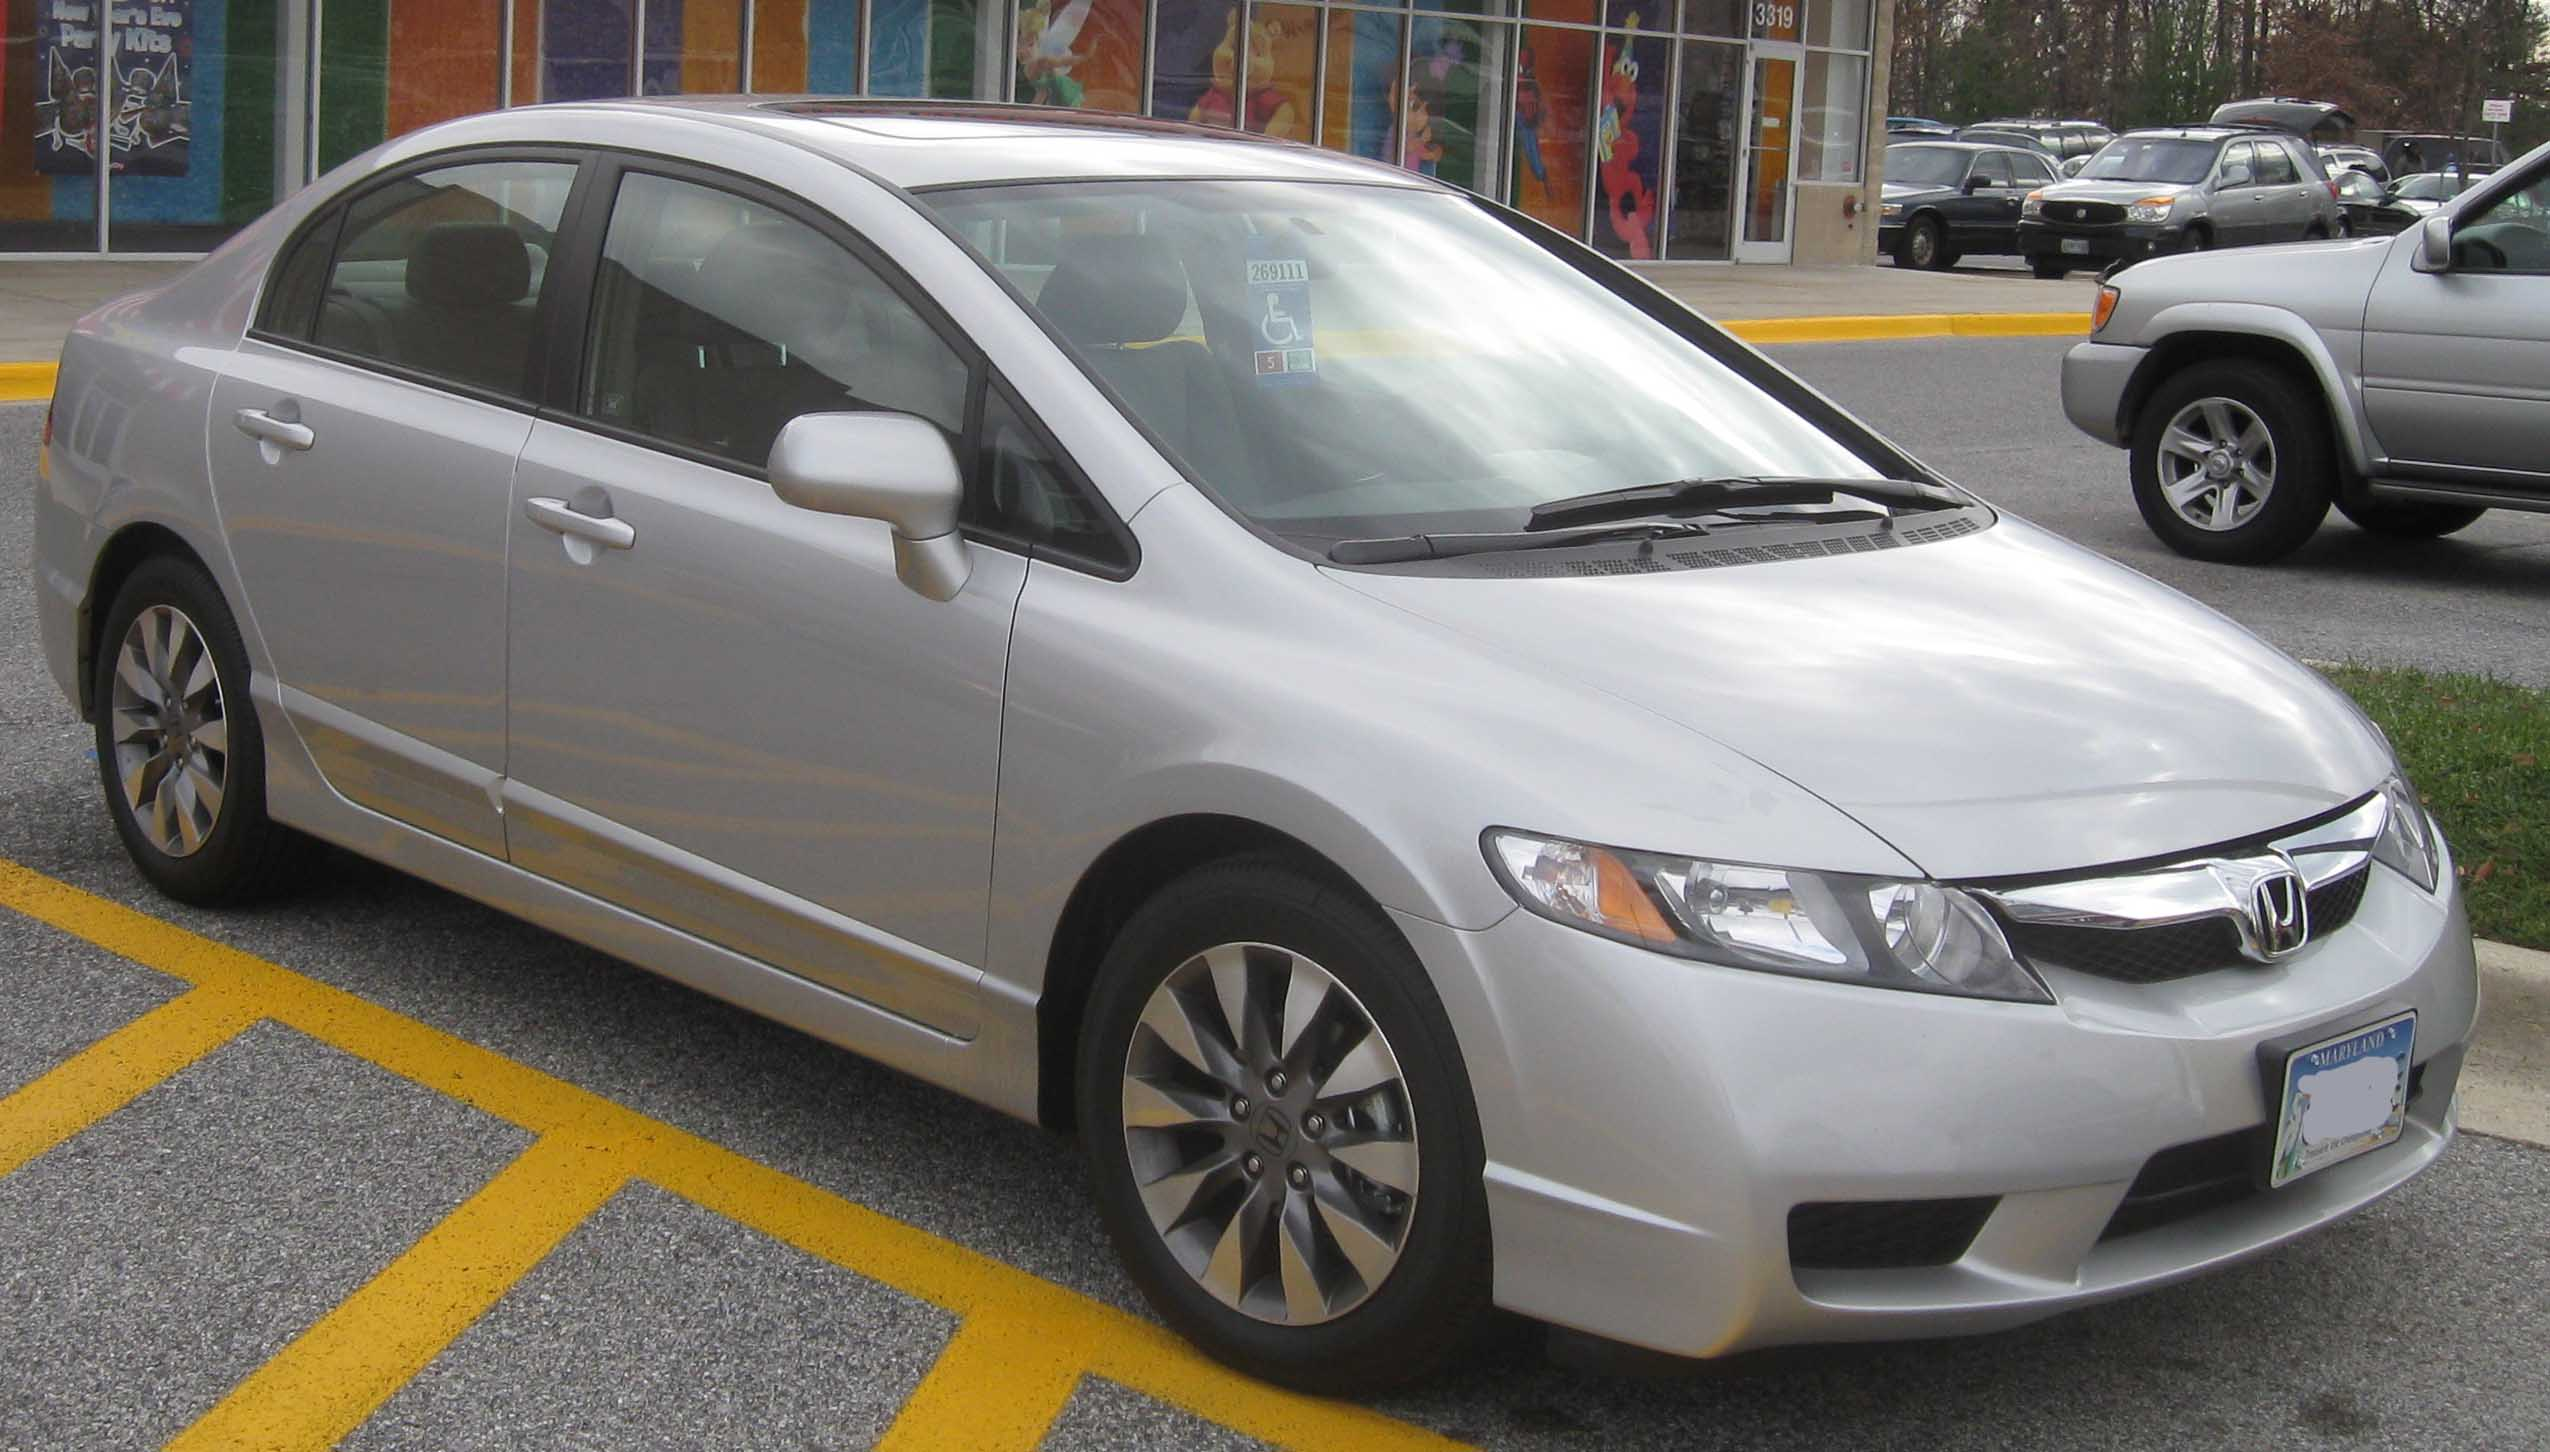 File:09 Honda Civic EX Sedan